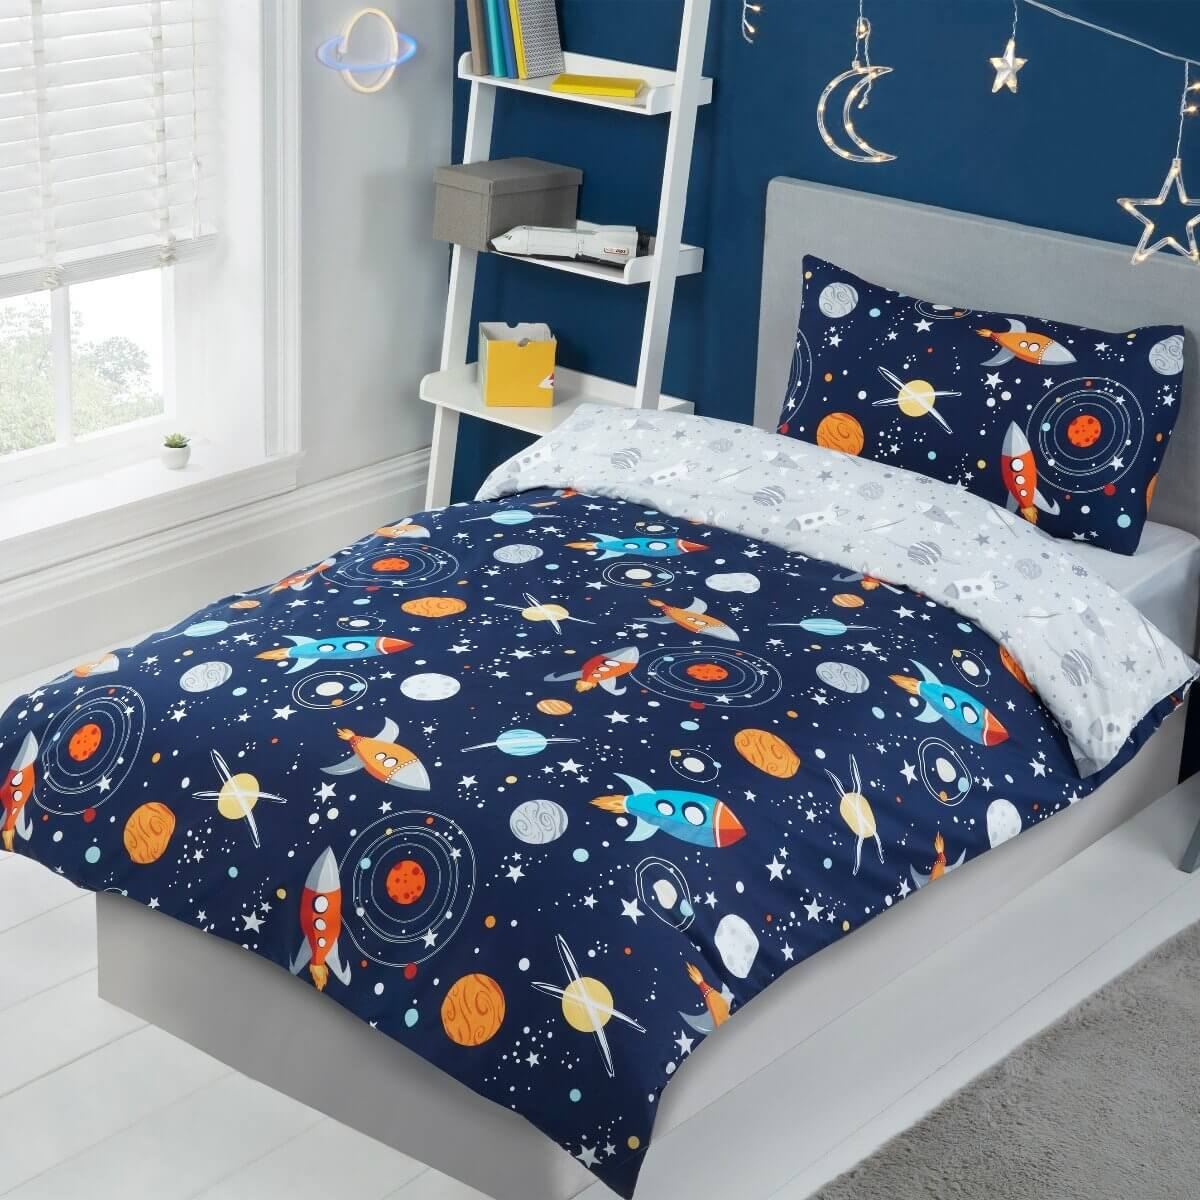 Out Of Space Navy Blue Bedding - Reversible Duvet Cover and Pillowcase Set